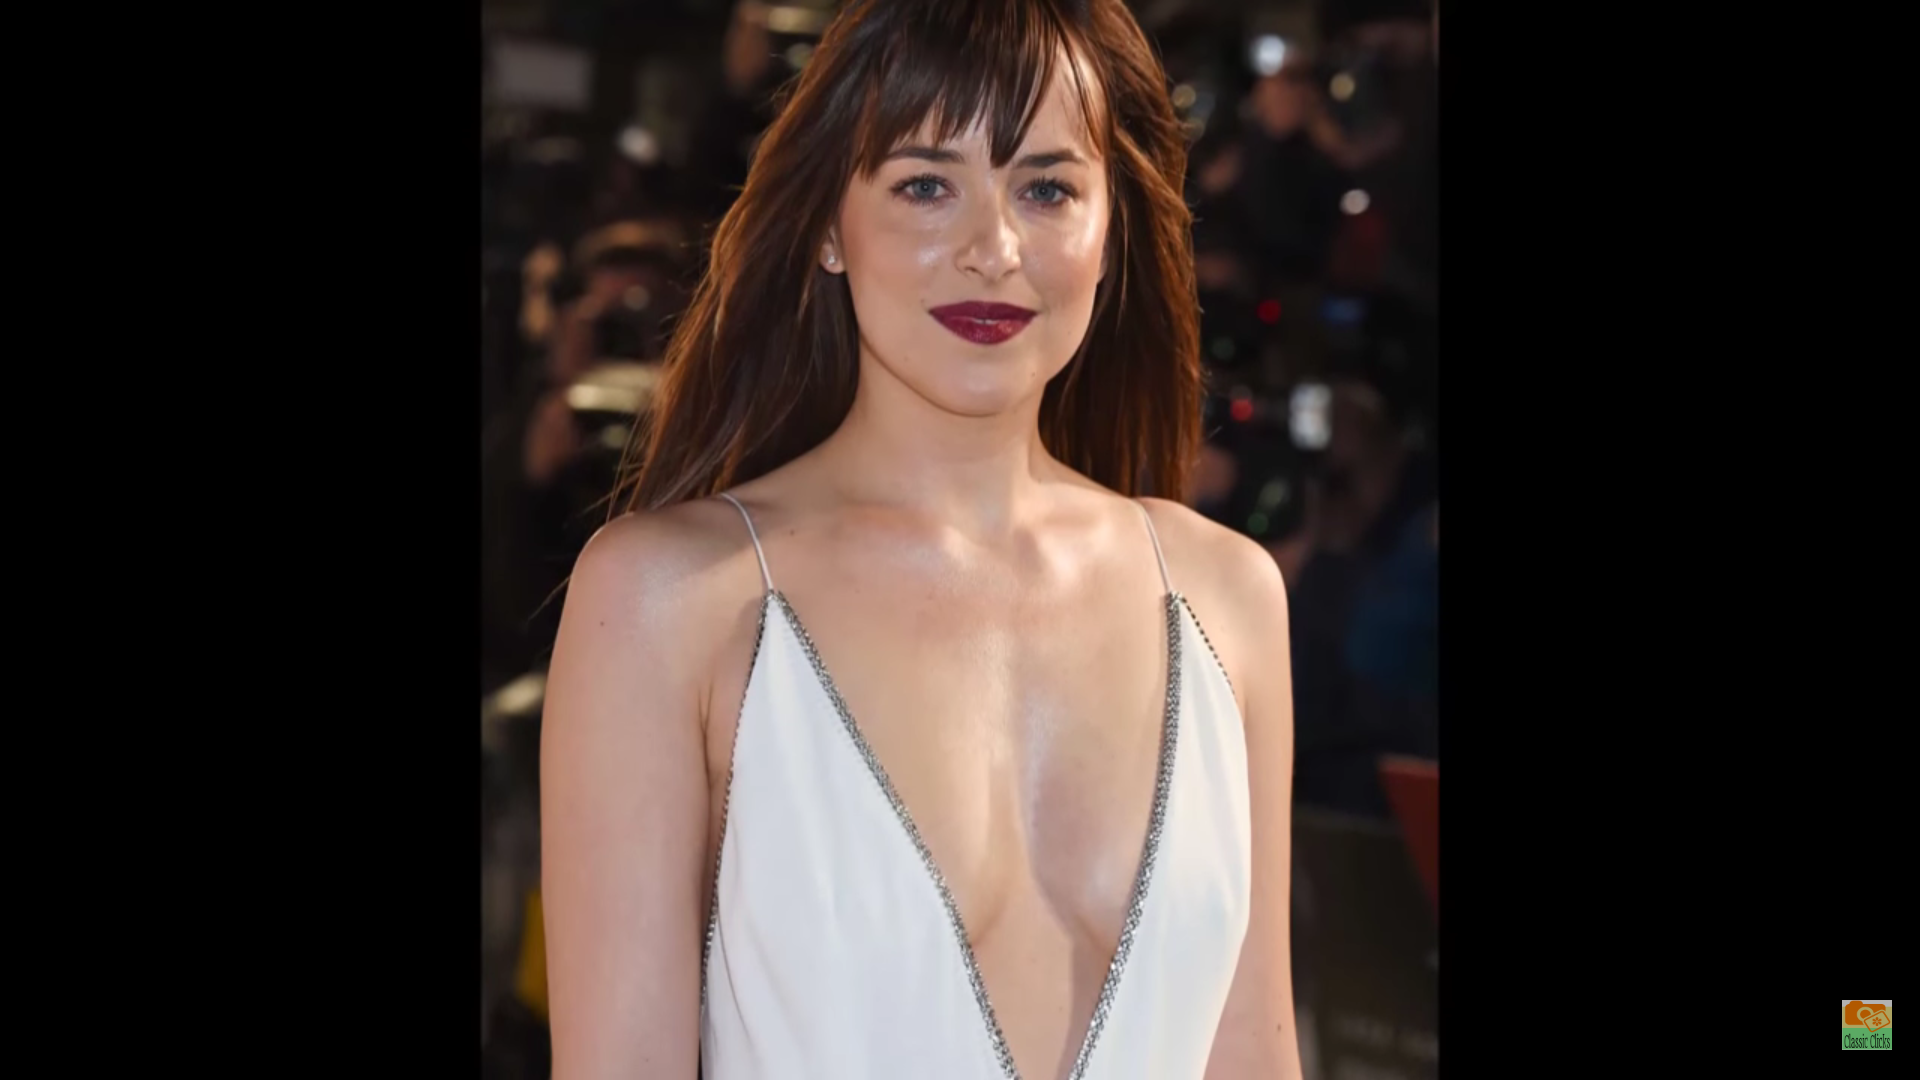 Is Dakota Johnson Bisexual